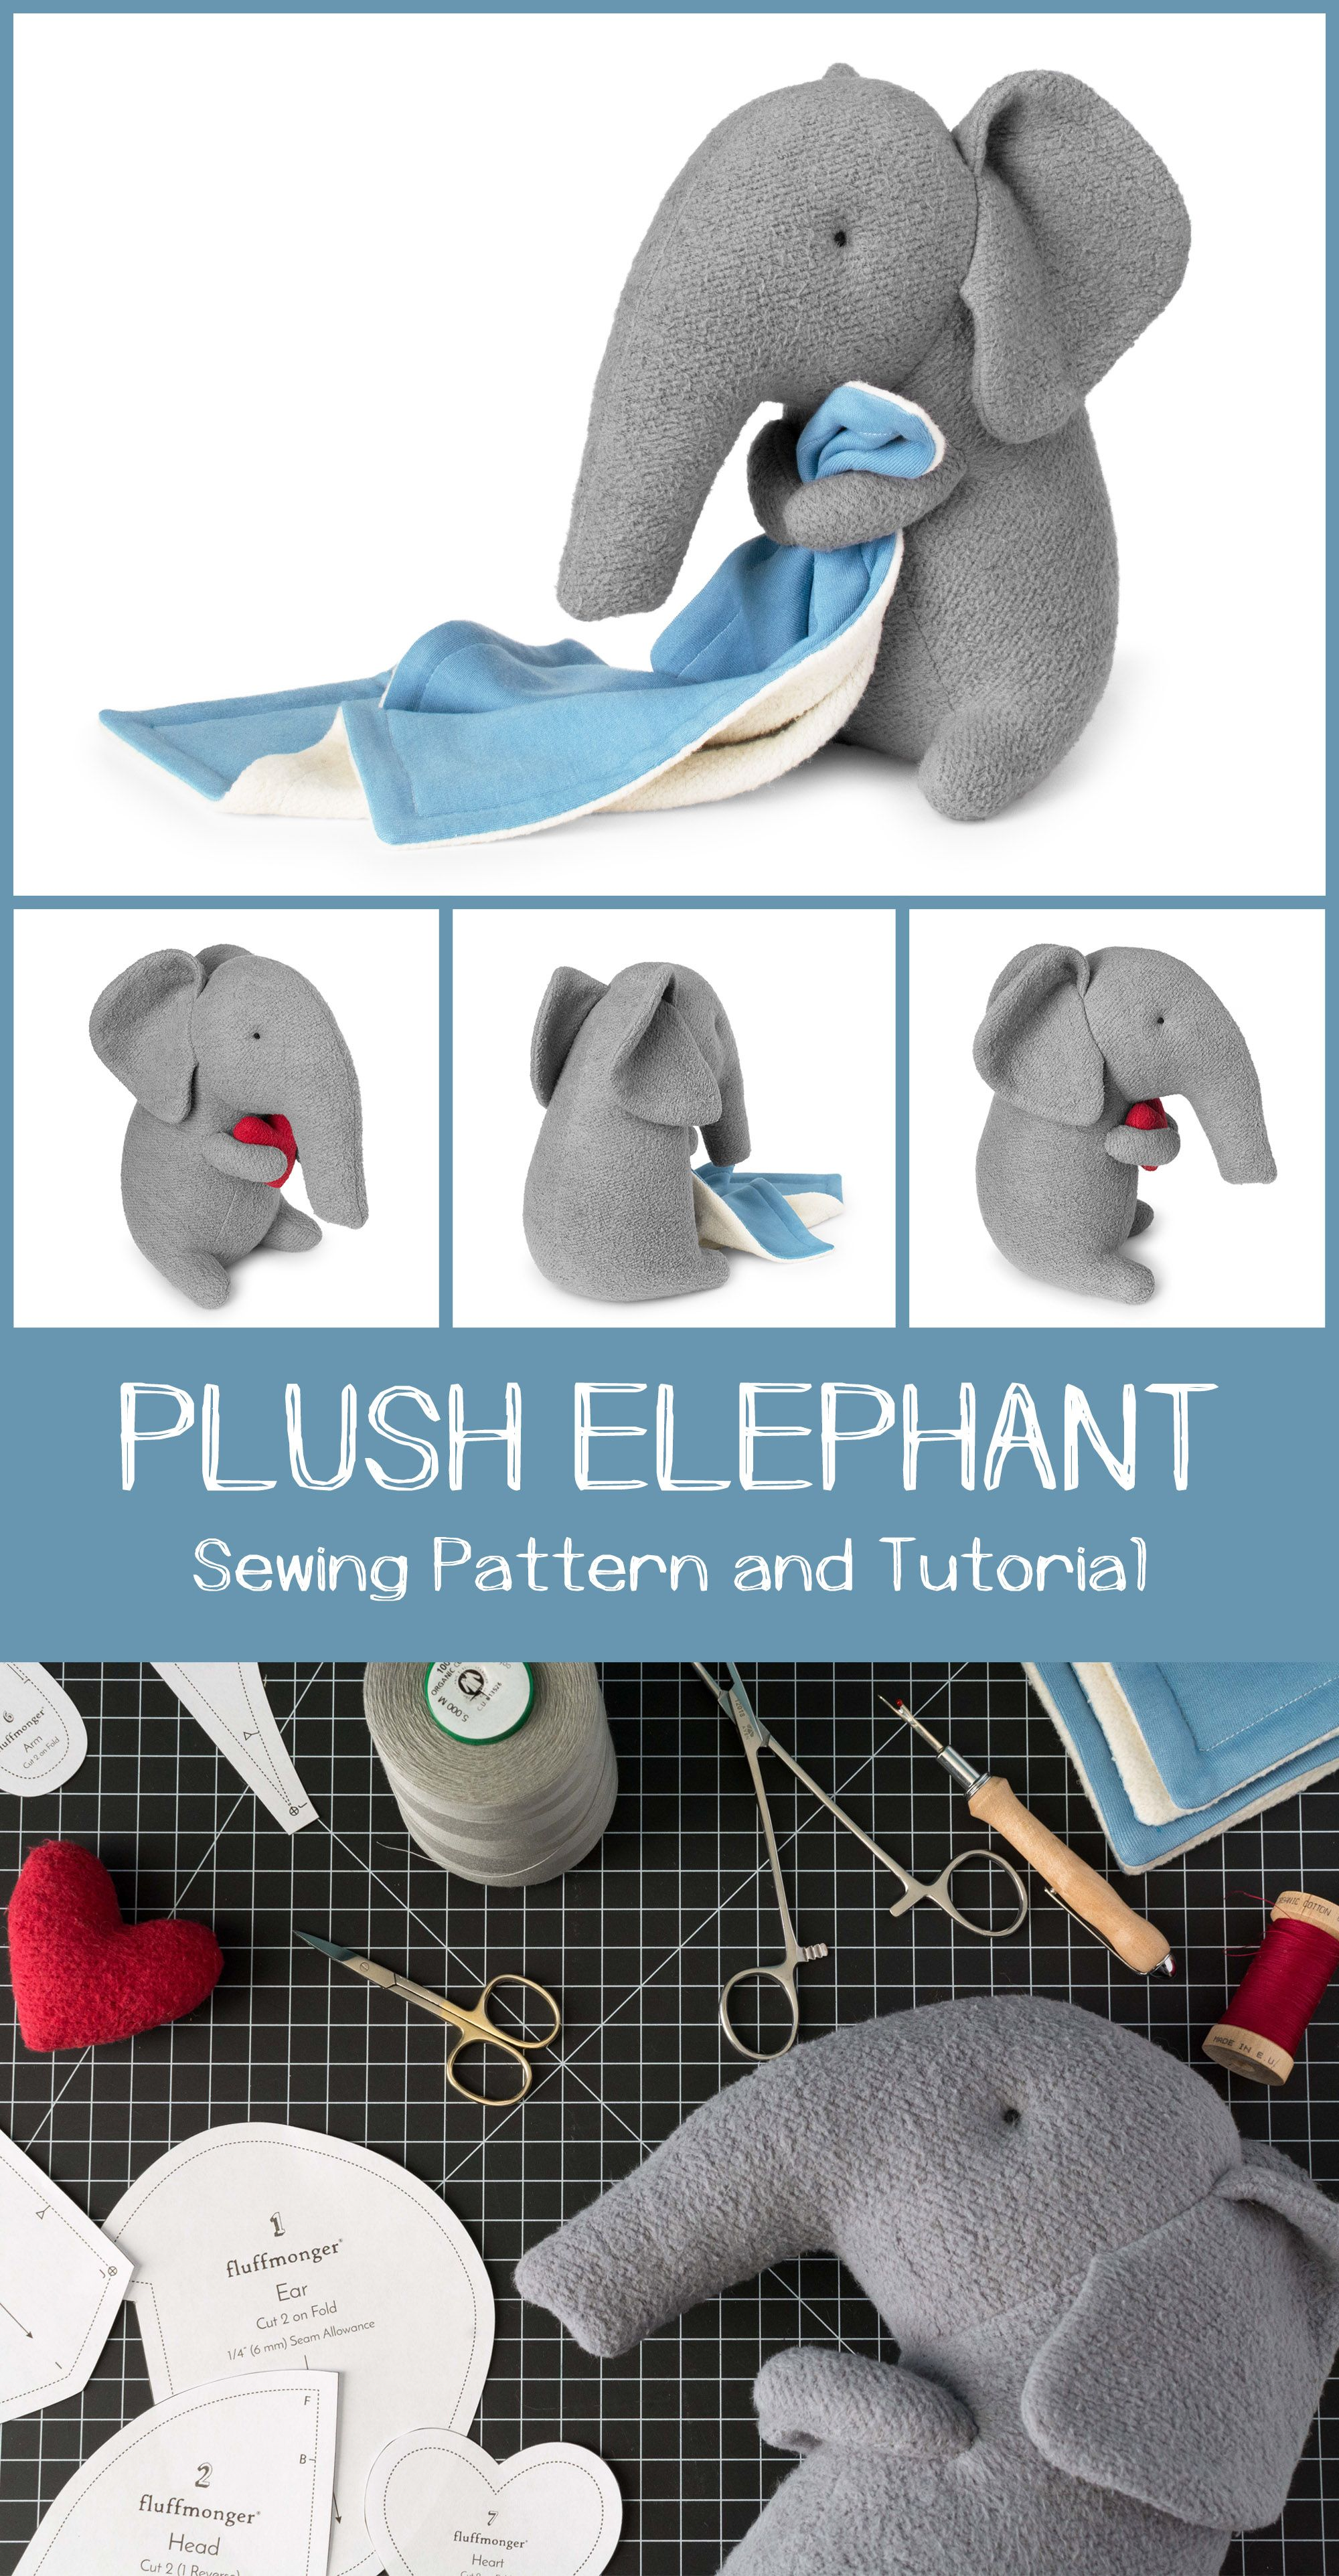 Plush Elephant Sewing Pattern patchwork quilt